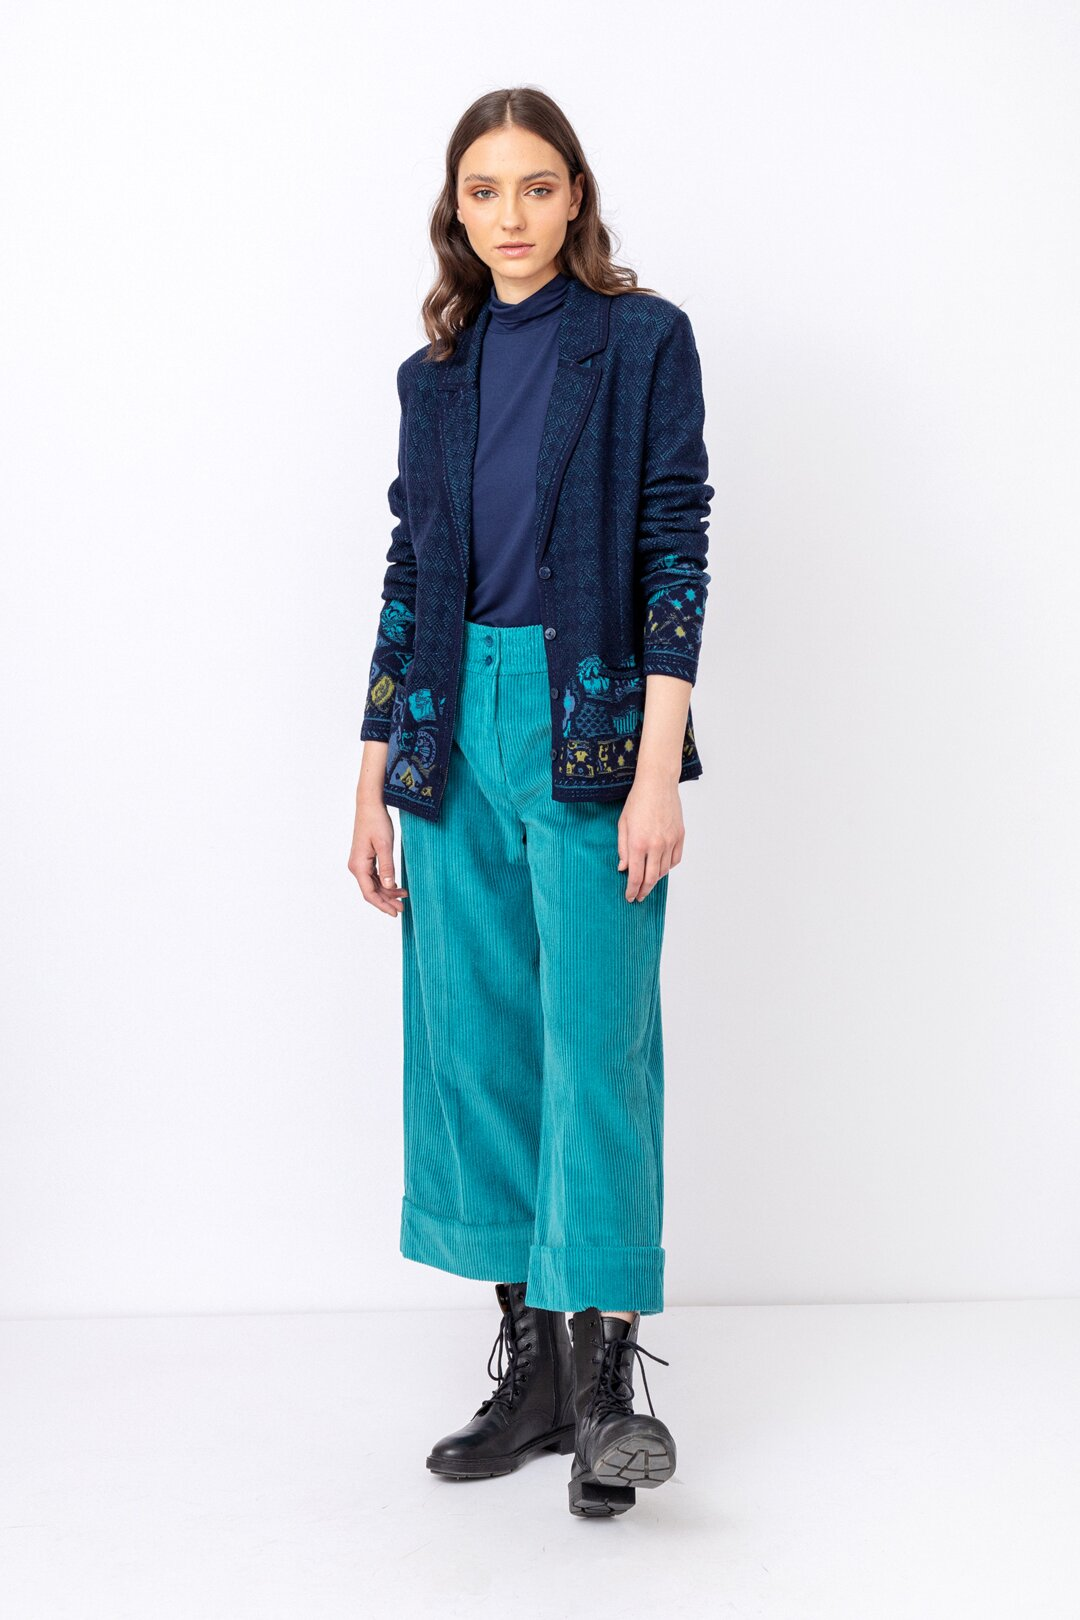 outfit-7c8a0945